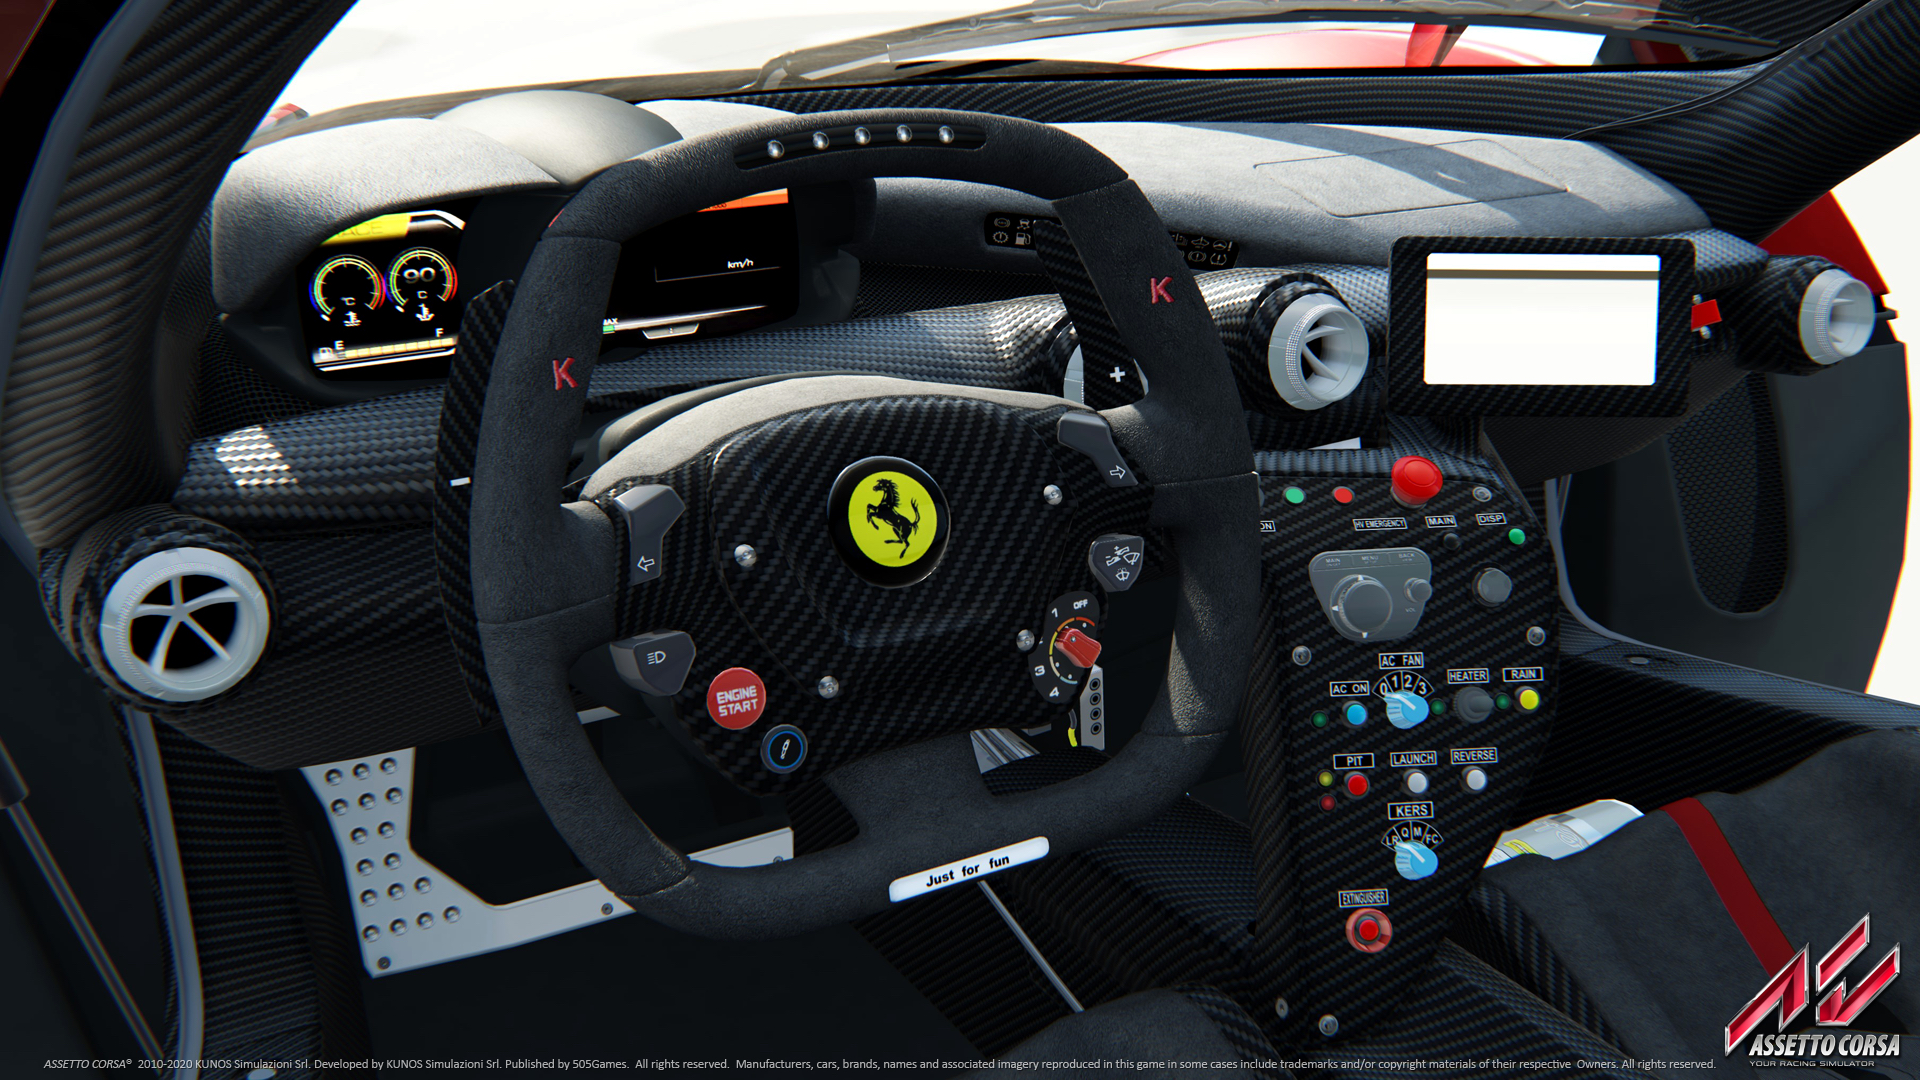 assetto-corsa-xbox-one-review-screenshot-2